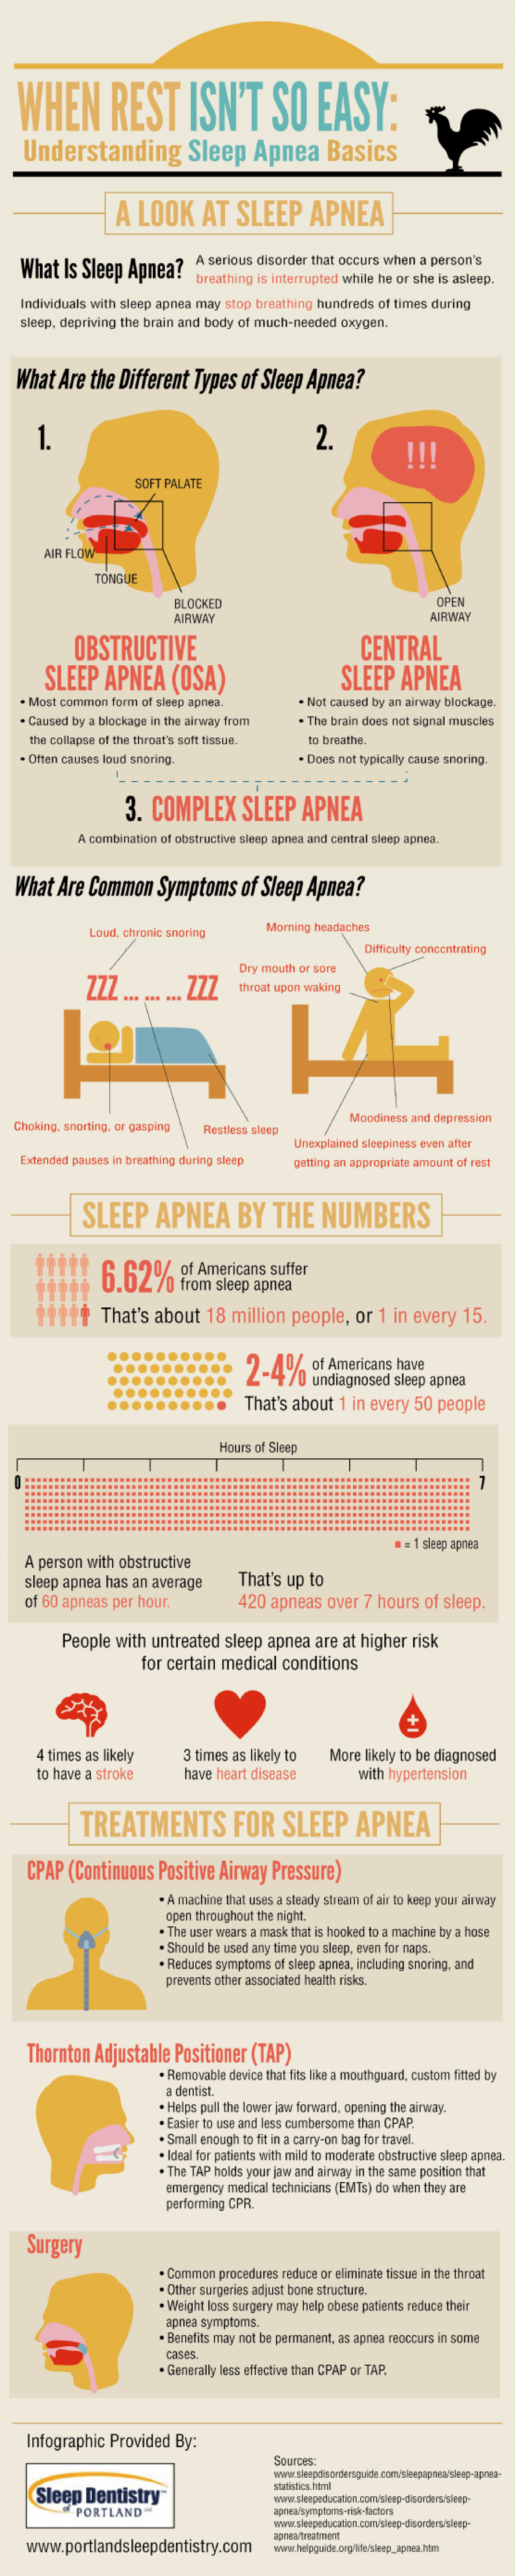 When Rest Isn't So Easy: Understanding Sleep Apnea Basics Infographic